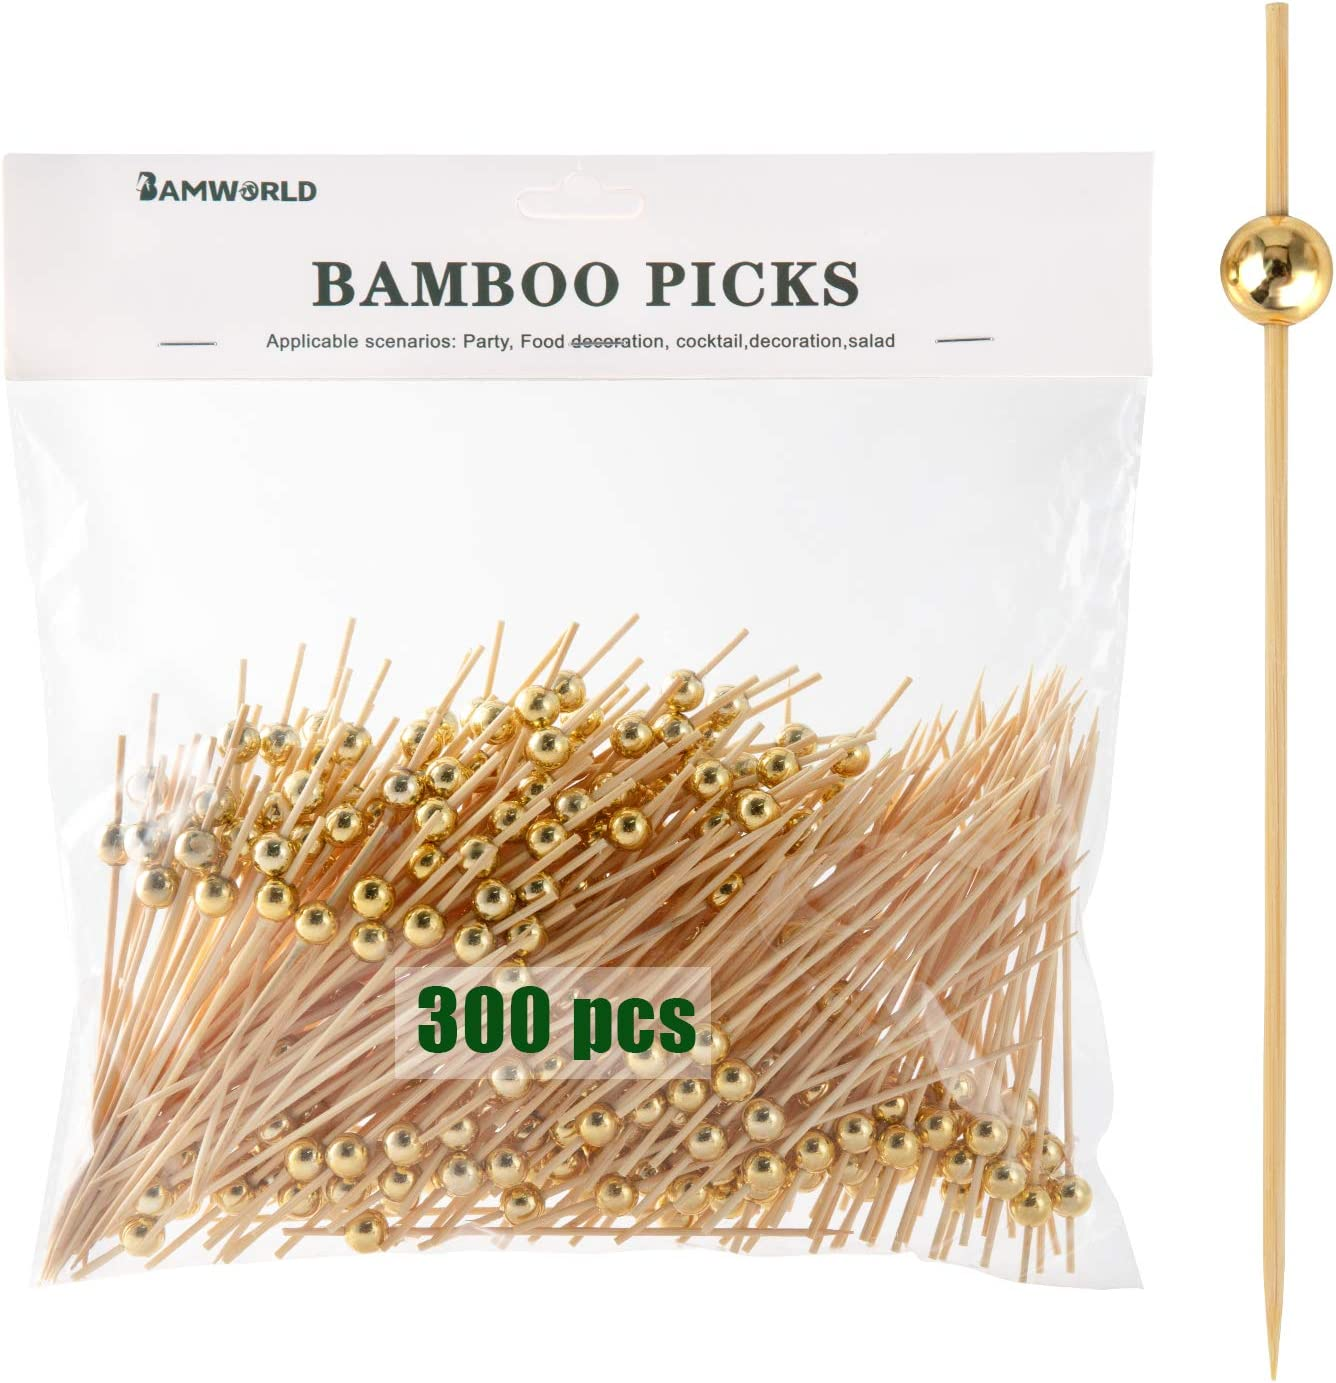 Bamboo Cocktail Picks Bamboo Skewers Appetizer Picks 4.7 Inch Food Picks with Handmade Design Skewers for Party Fruit and Food Snacks (Gold, 300)